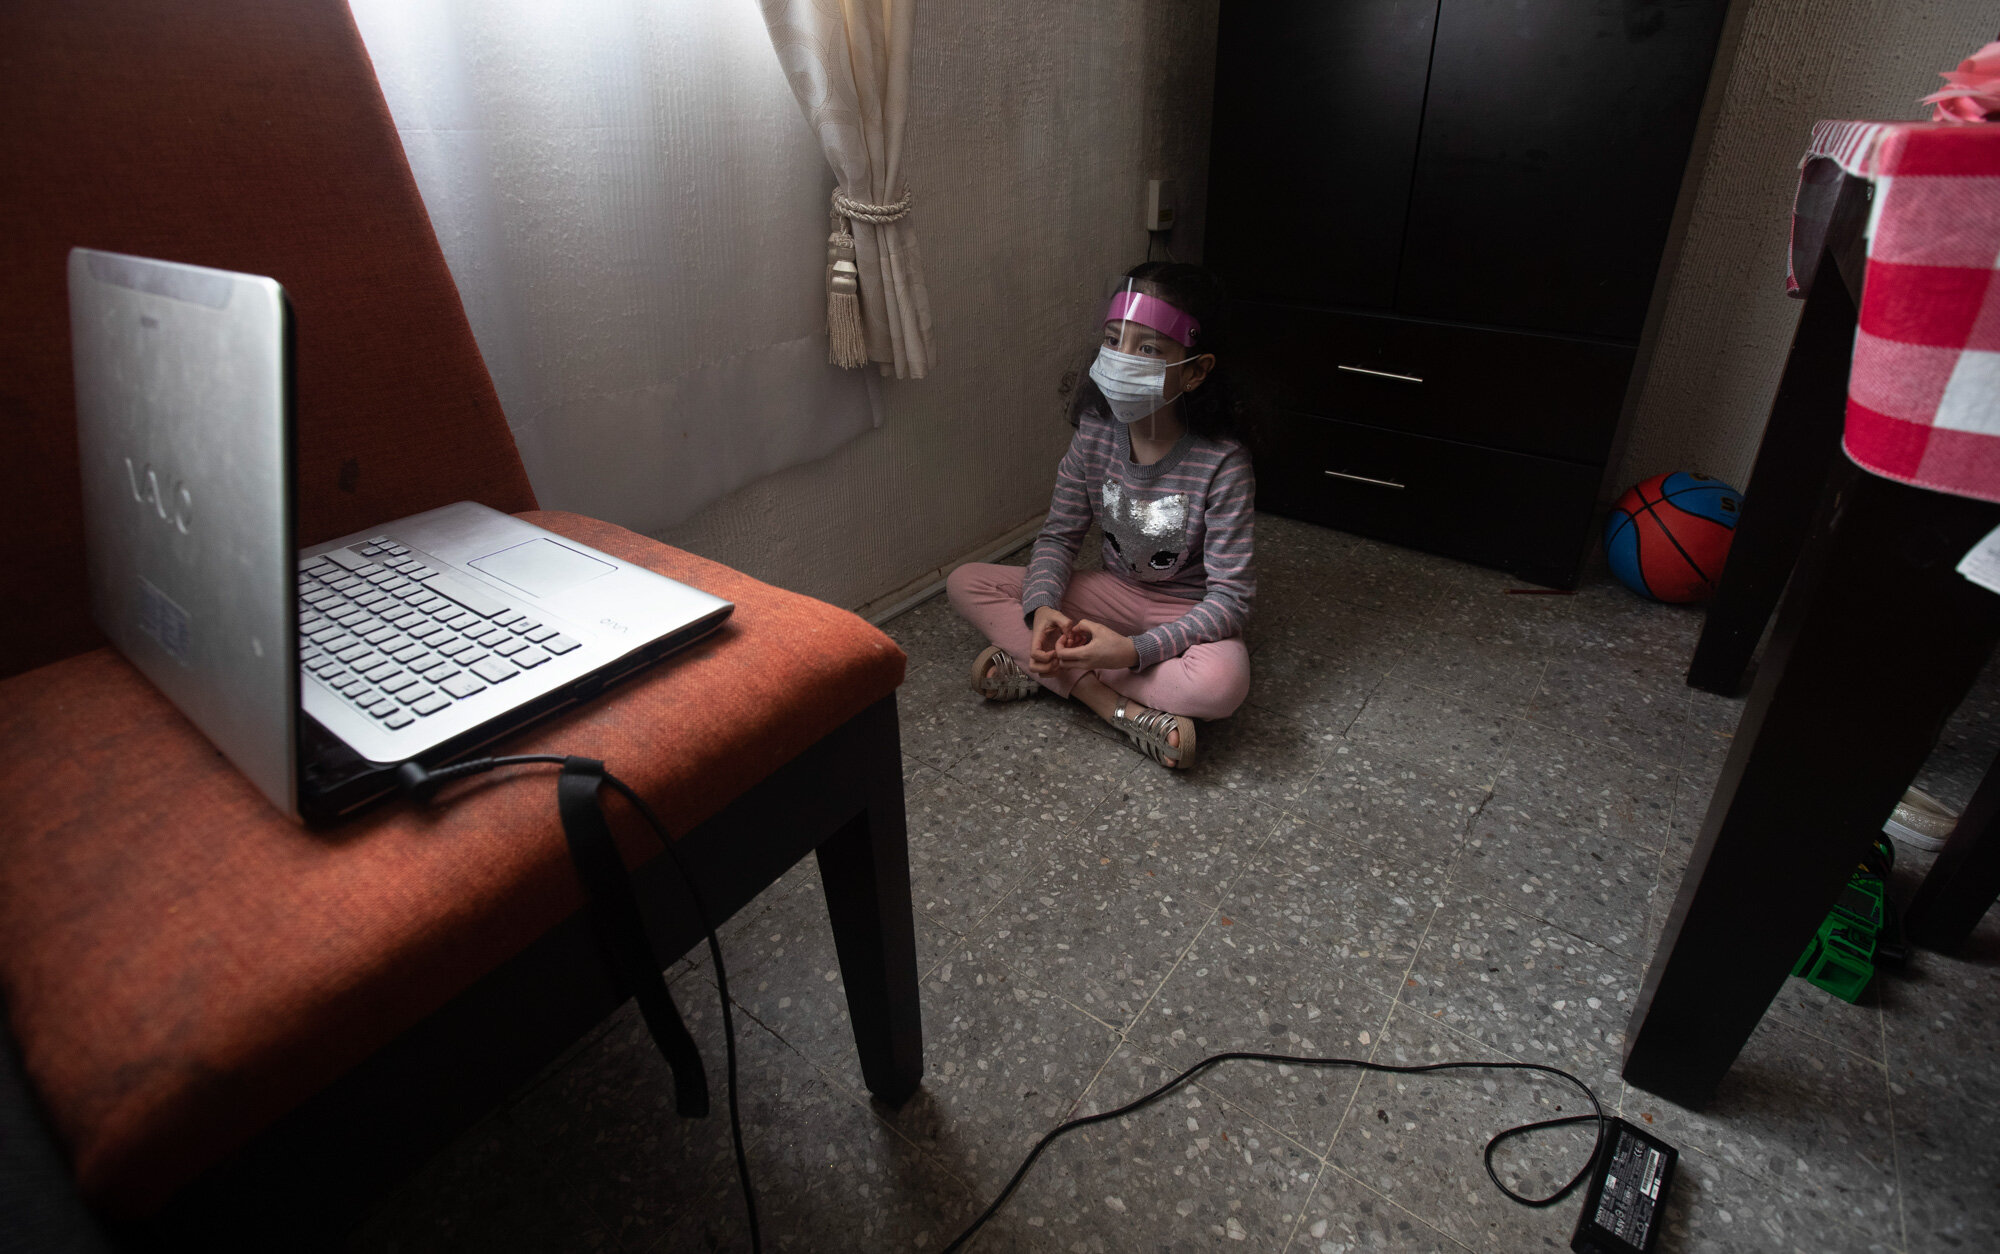 Monserrat Medina Zentella attends school via the internet from her home in Mexico City on Aug. 24, 2020, amid the coronavirus pandemic. (AP Photo/Marco Ugarte)